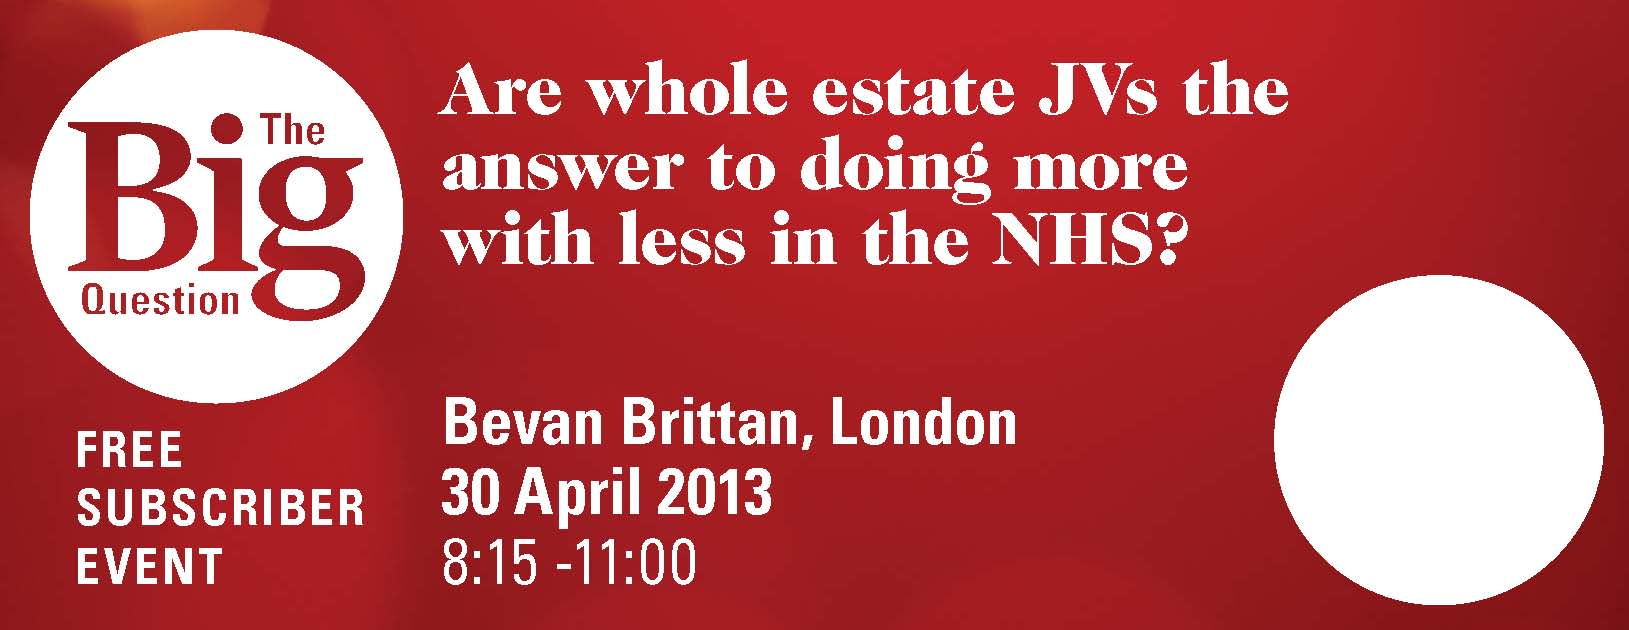 Big Question: Are whole estate  JVs the answer to doing more with less in the NHS?